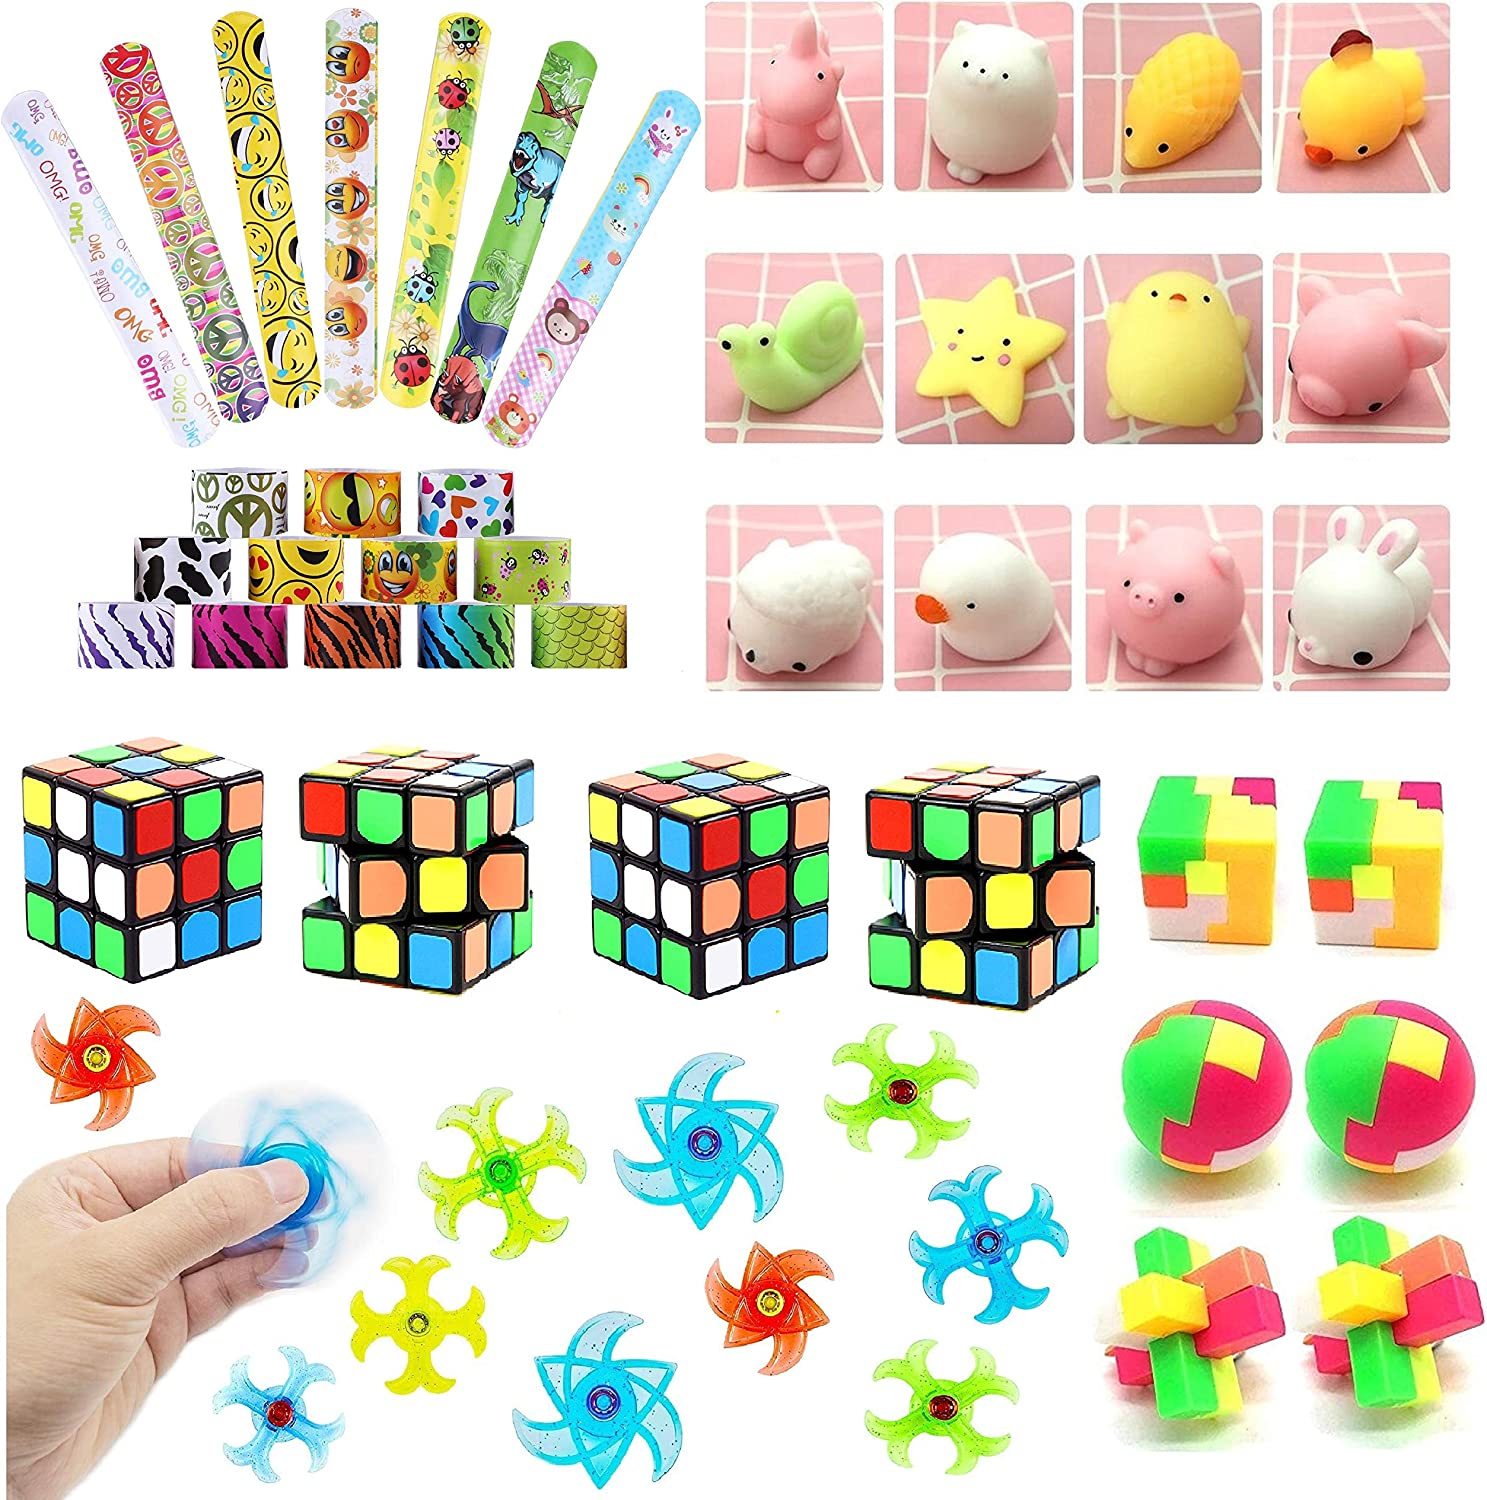 Party Favors for kids,Party Favors Assortment,Birthday Party,Carnival Prizes,Party Prizes,Goody Bag Fillers,Treasure Box Prizes For Classroom Rewards,Party Toys